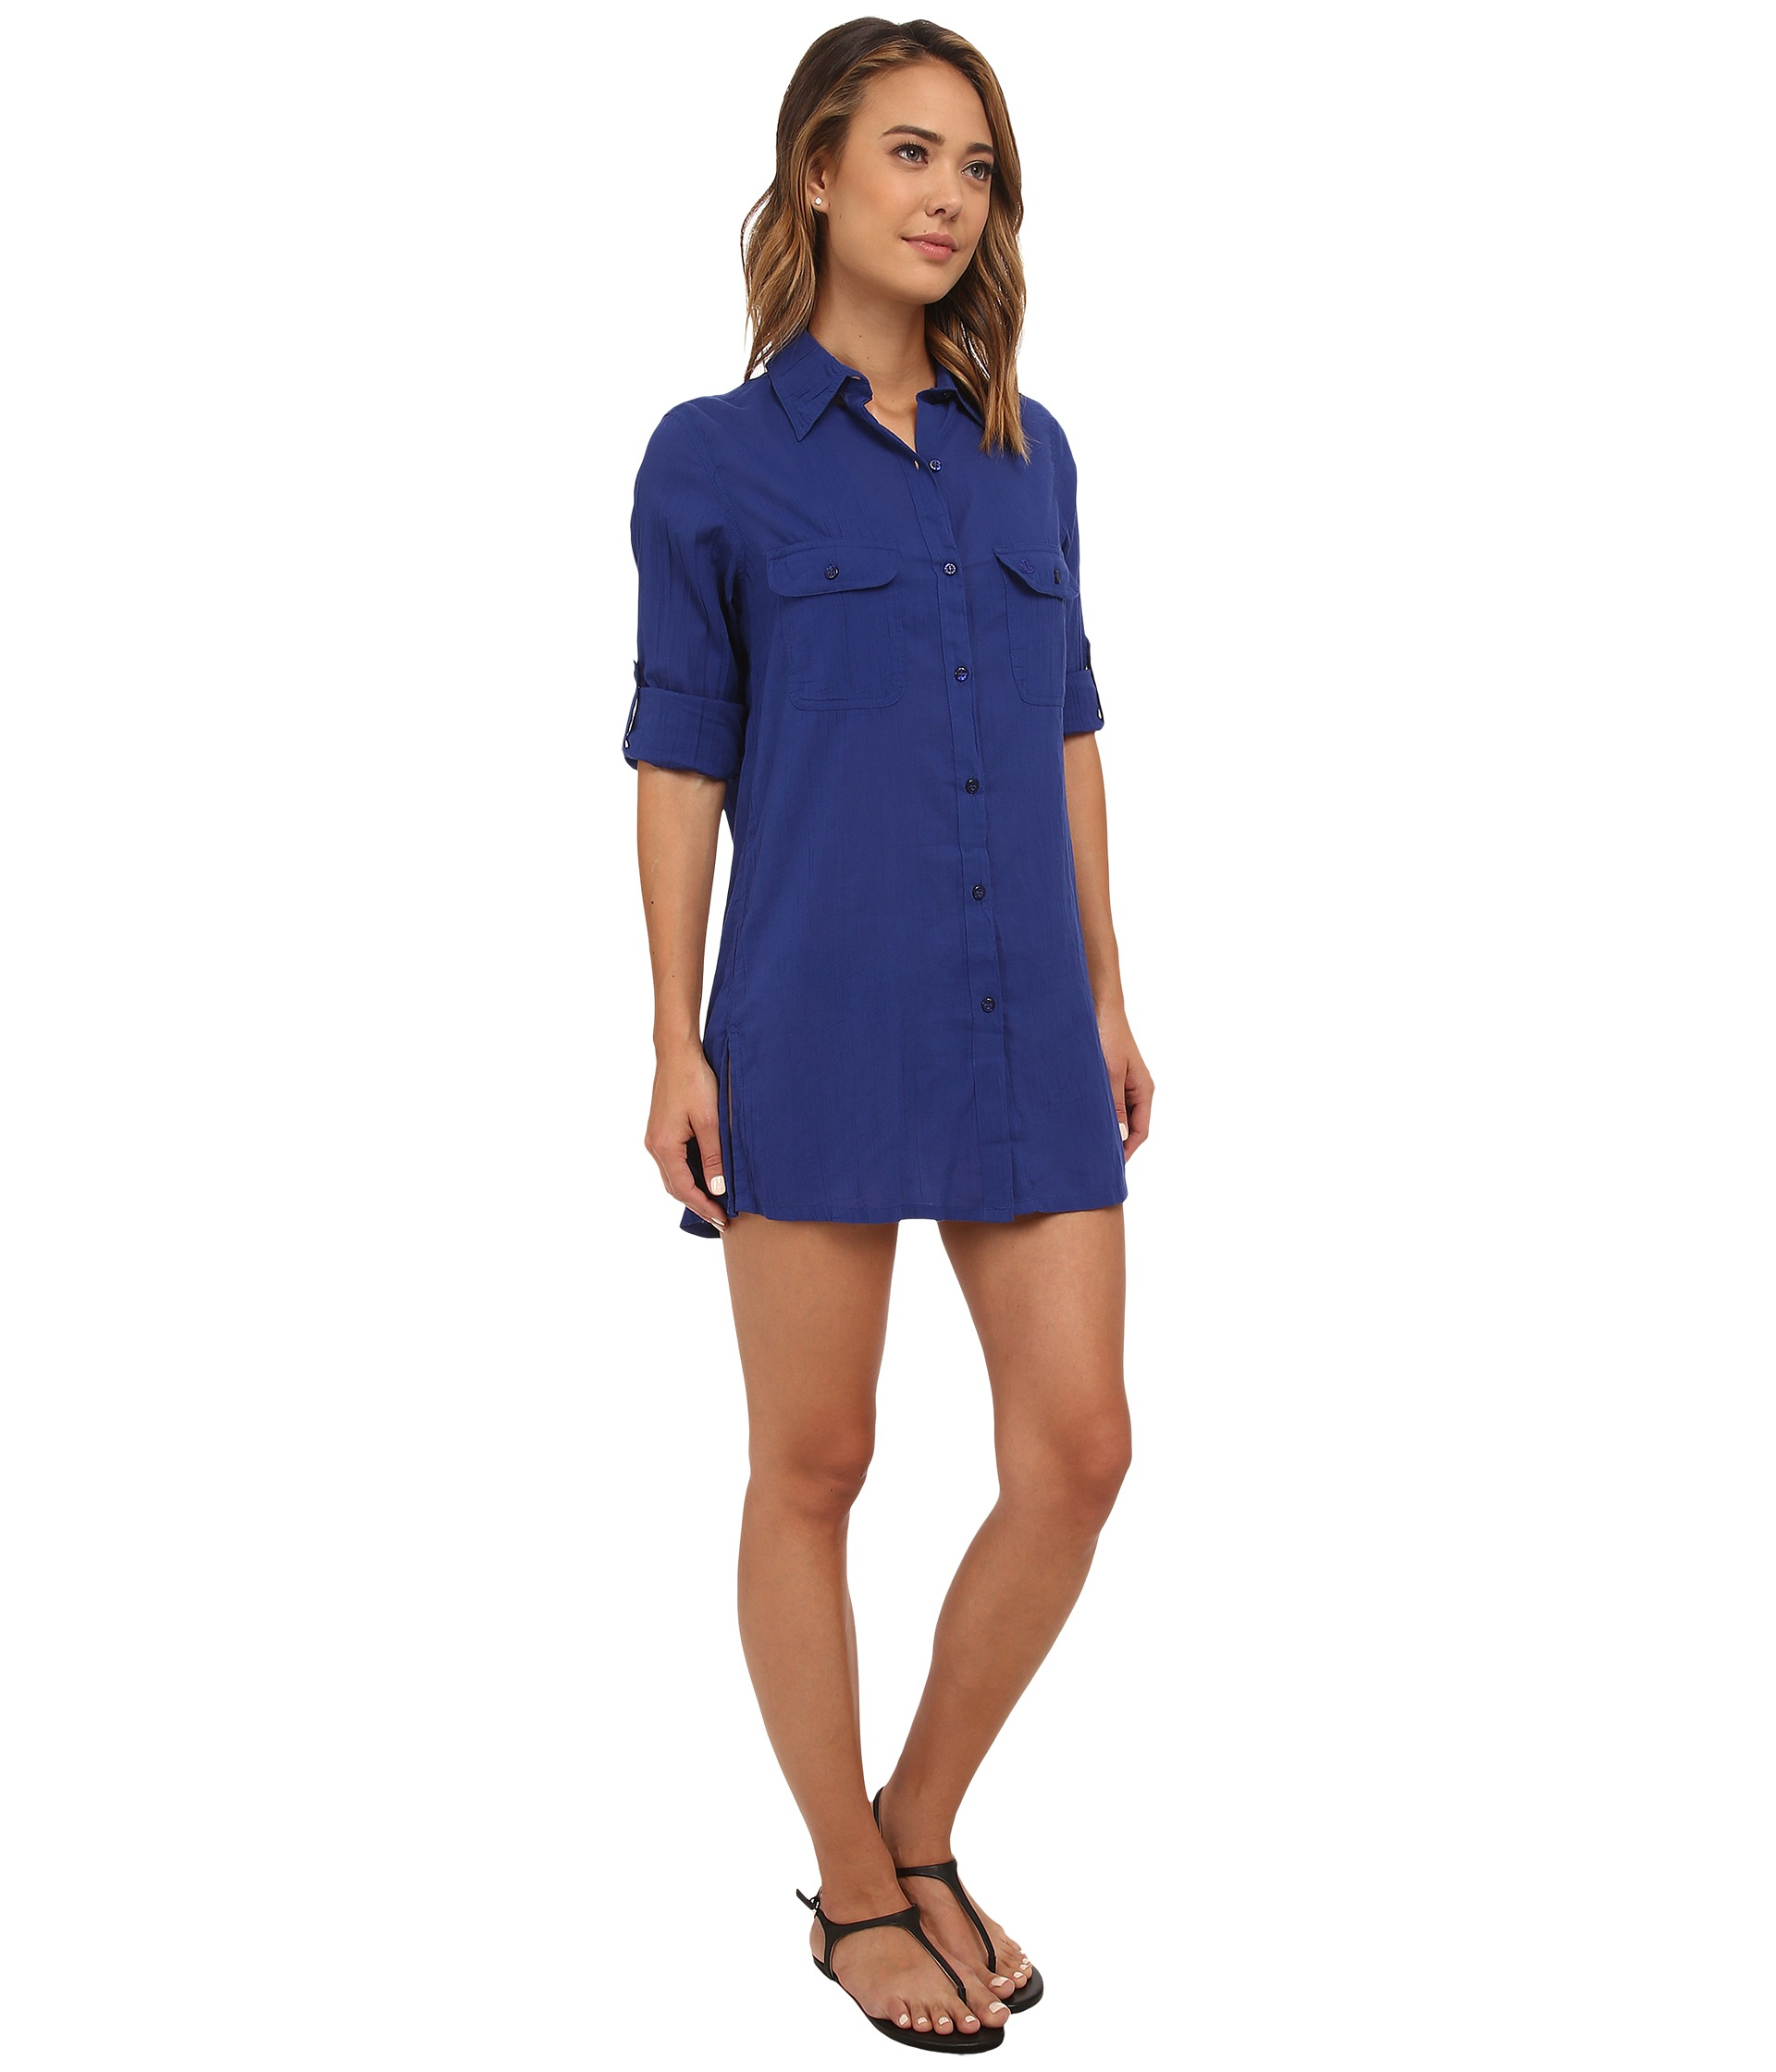 ed8993ef0e6 Lyst - Lauren by Ralph Lauren Crushed Cotton Camp Shirt Cover-up in Blue